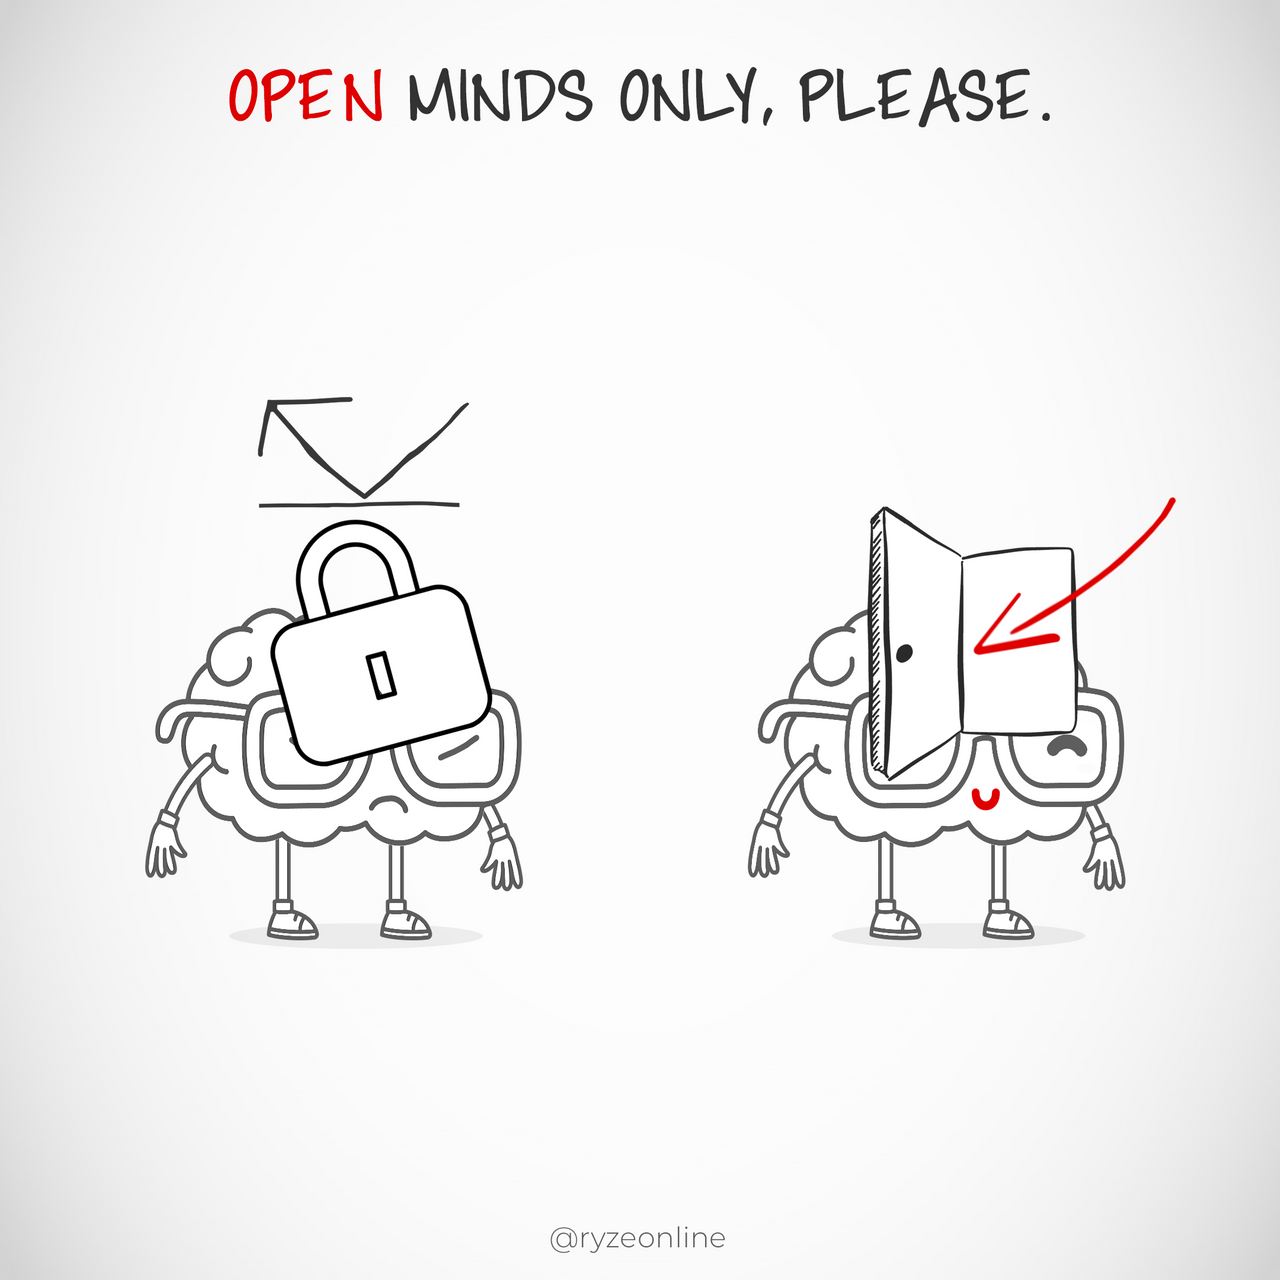 080_Open_Minds.png